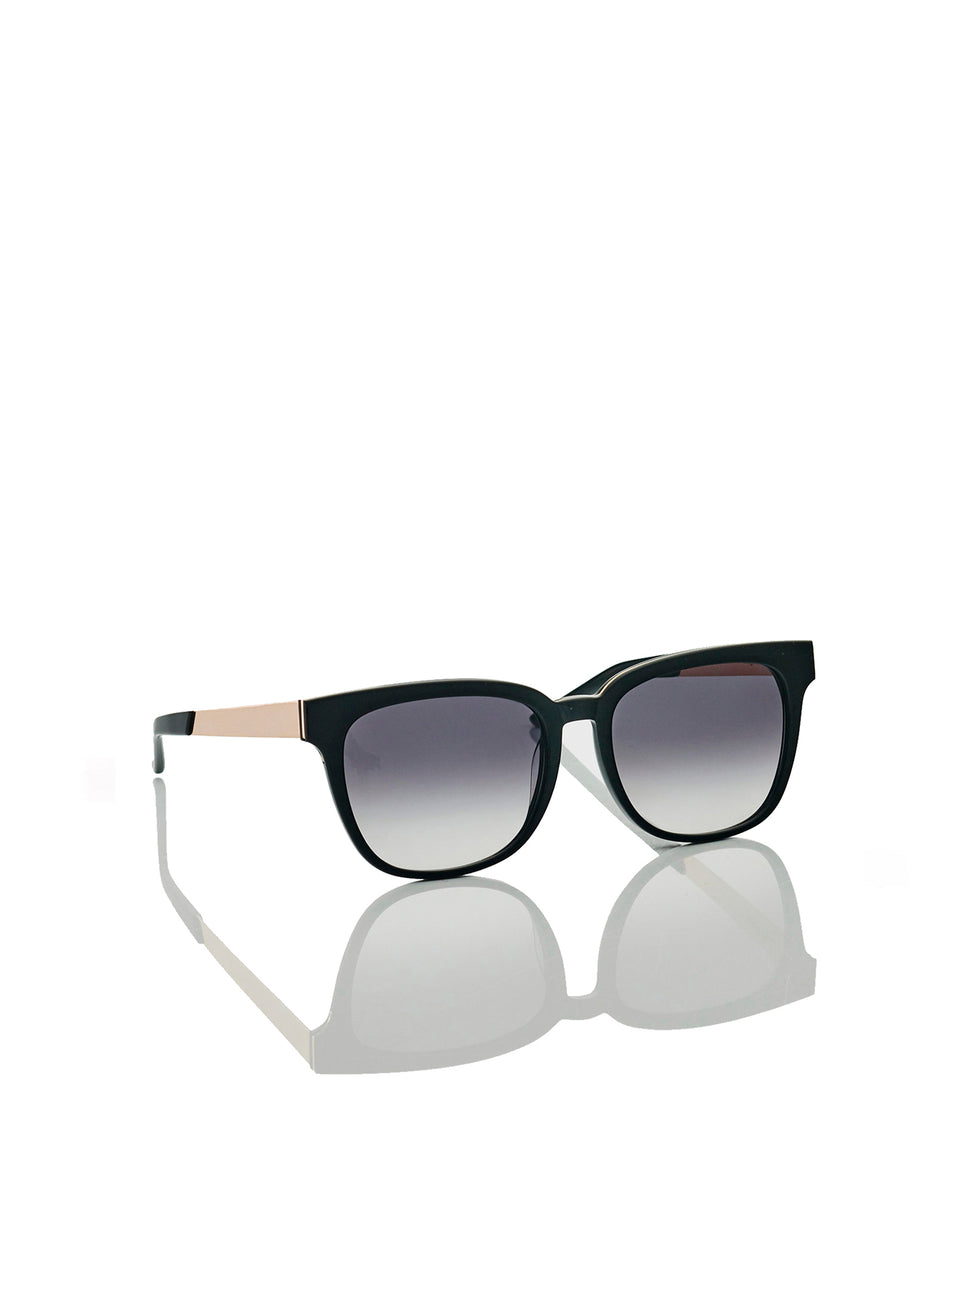 JH Eyewear No. 05 (acetate) black gold